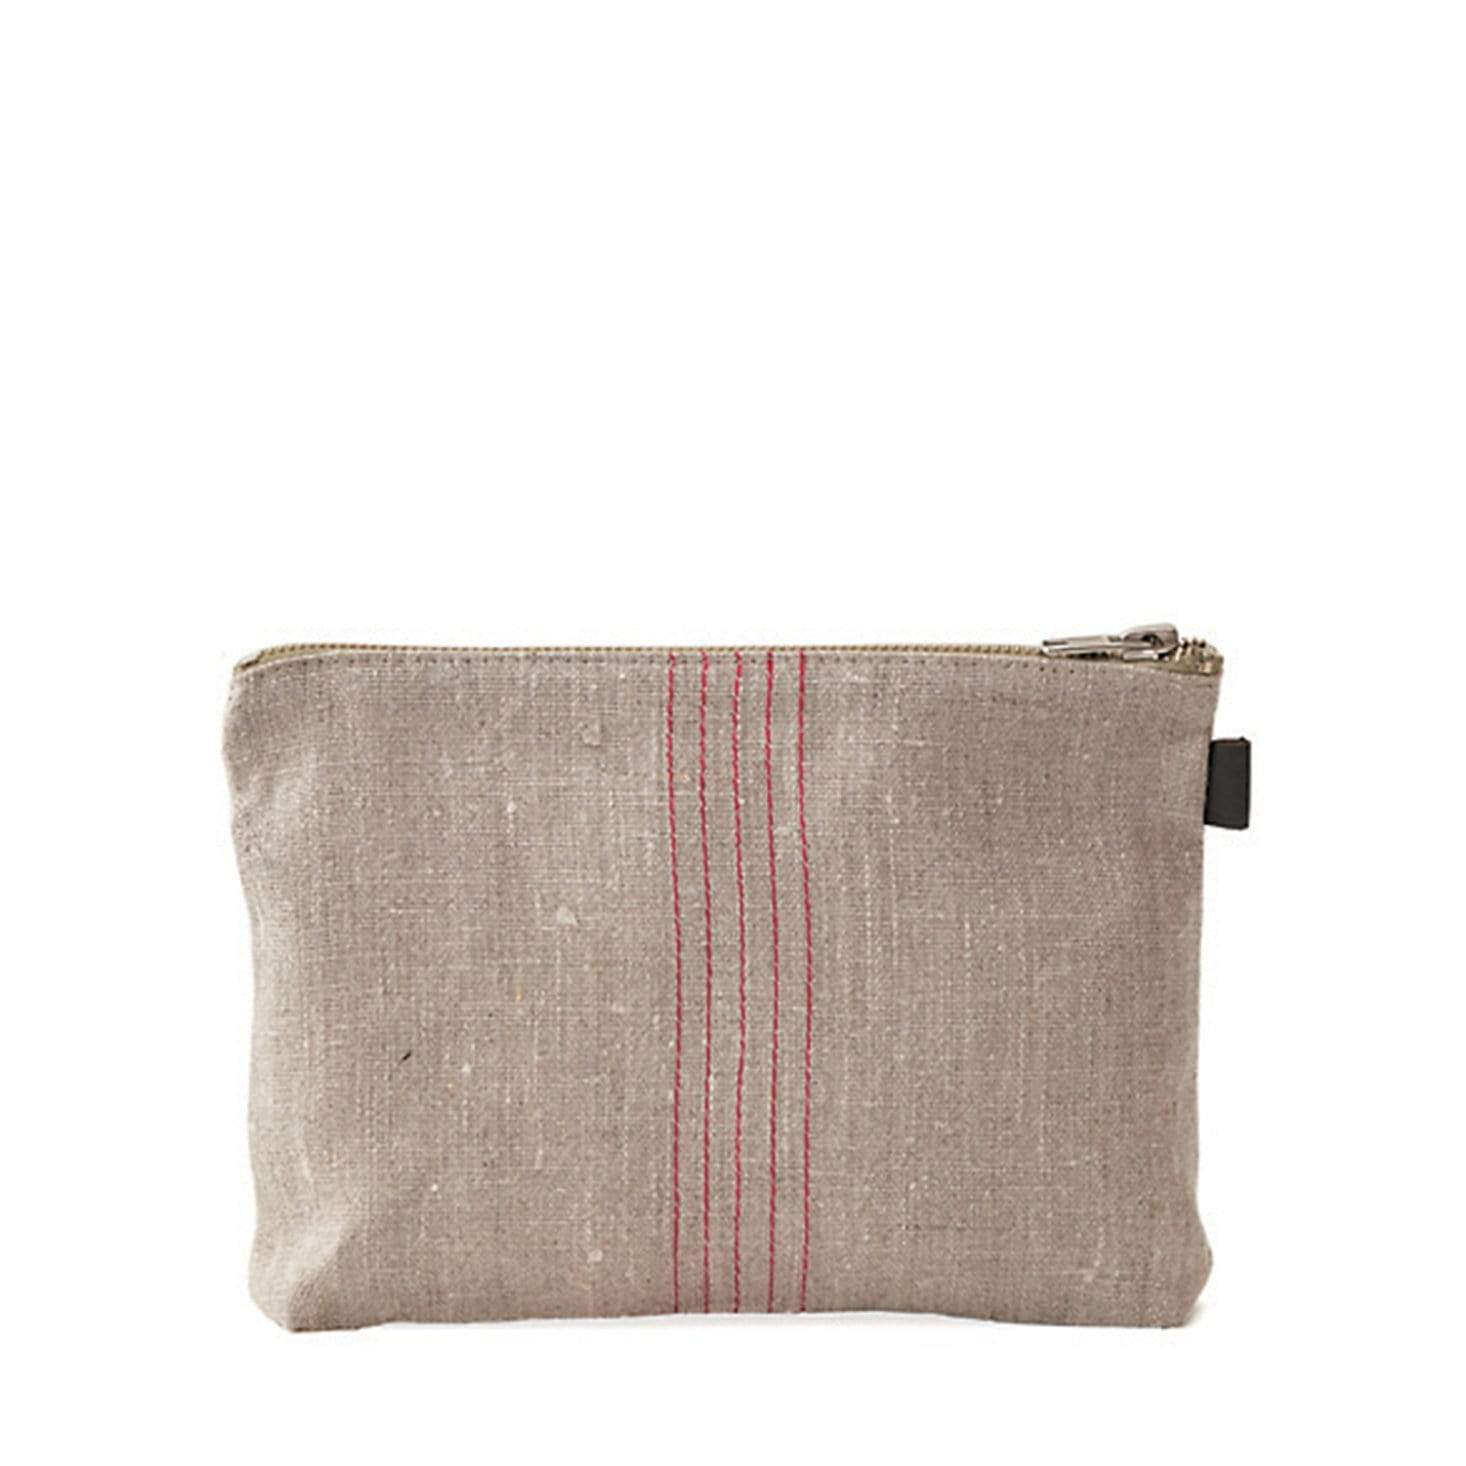 Fog Linen Work 'Tina' Pouch - Natural + Red